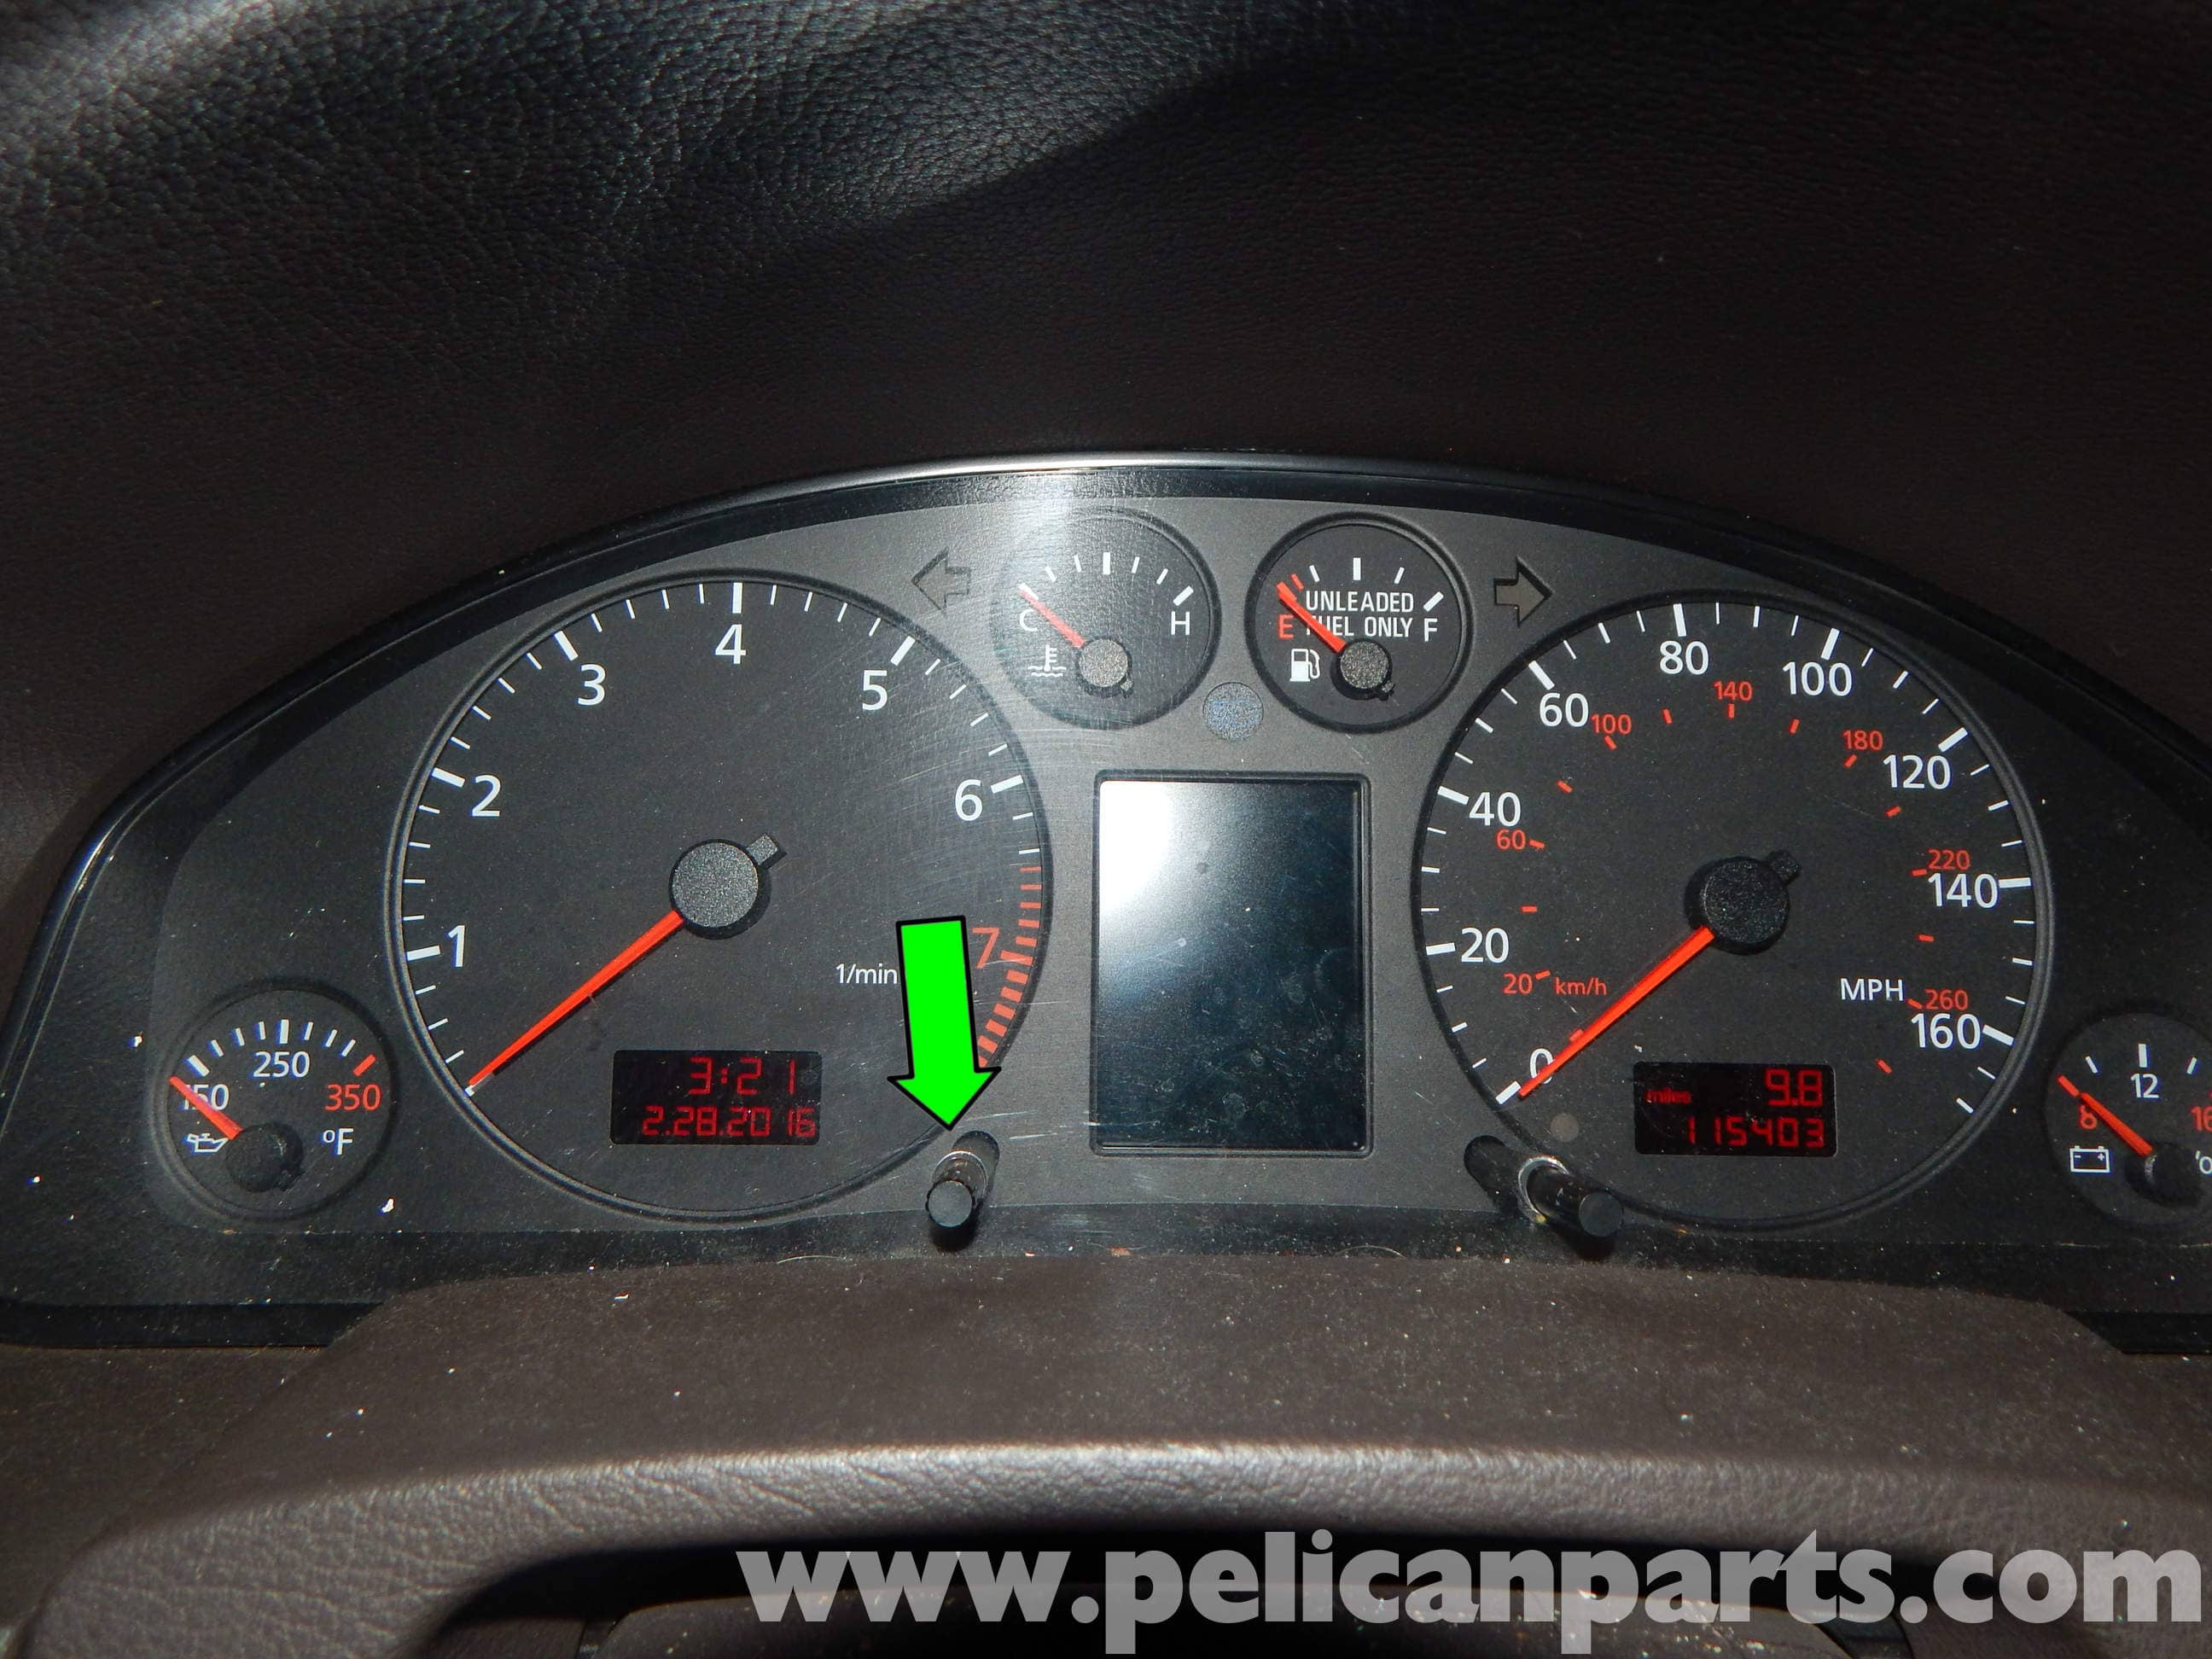 How To Turn Off Service Reminder In Mercedes Benz C